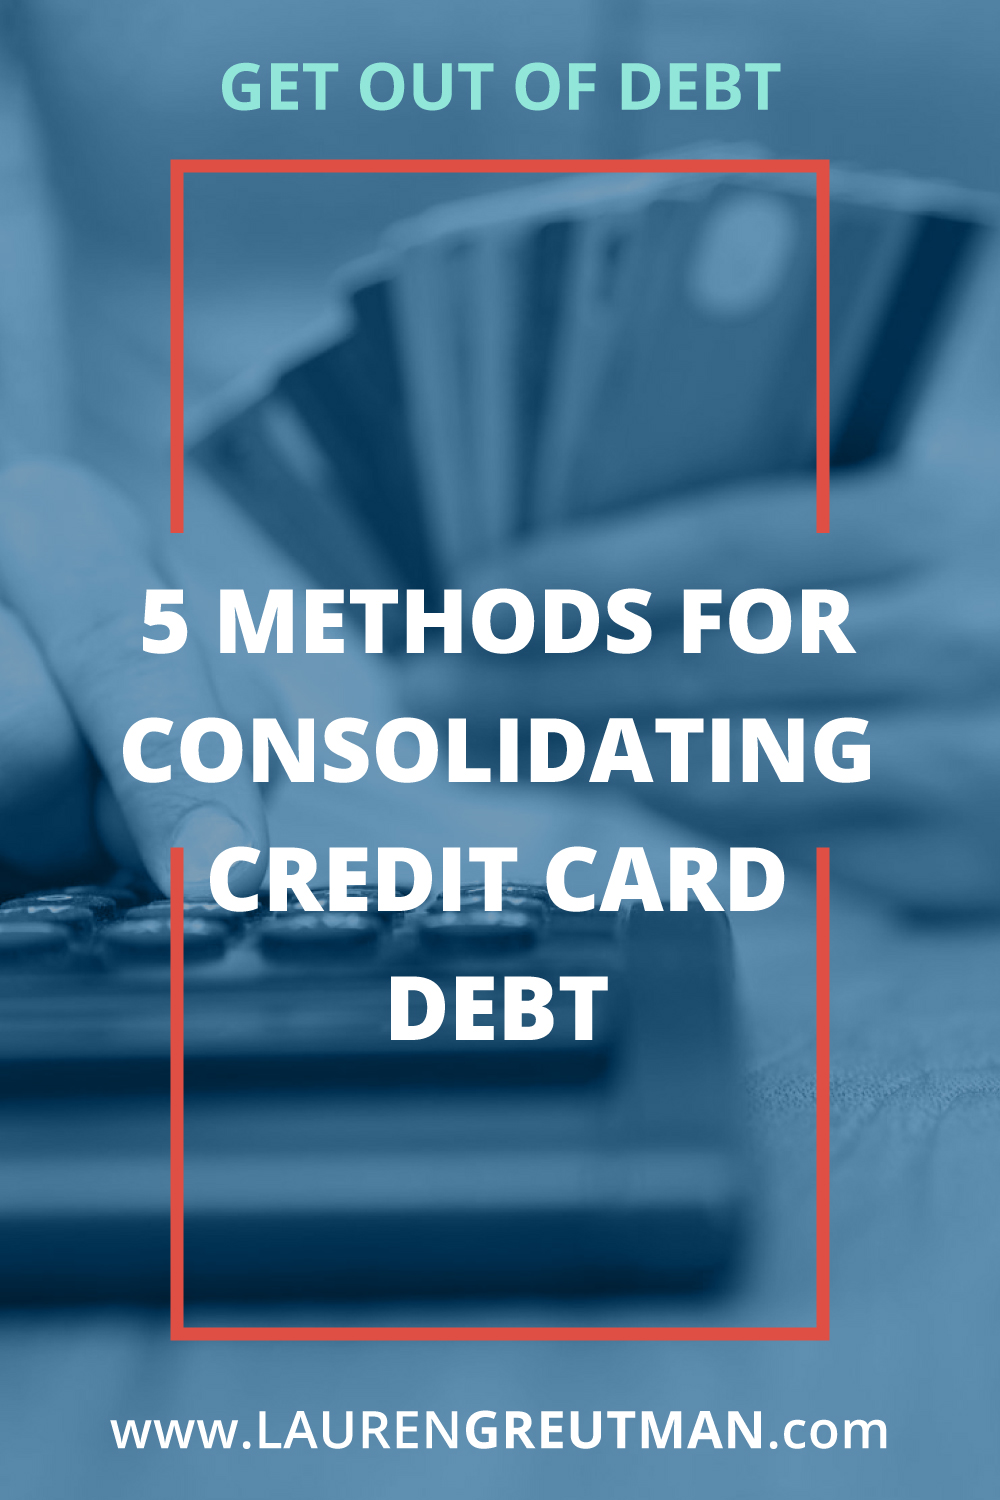 Wondering how or if you should consolidate credit card debt? Here are 5 options to explore if you're considering about debt consolidation.